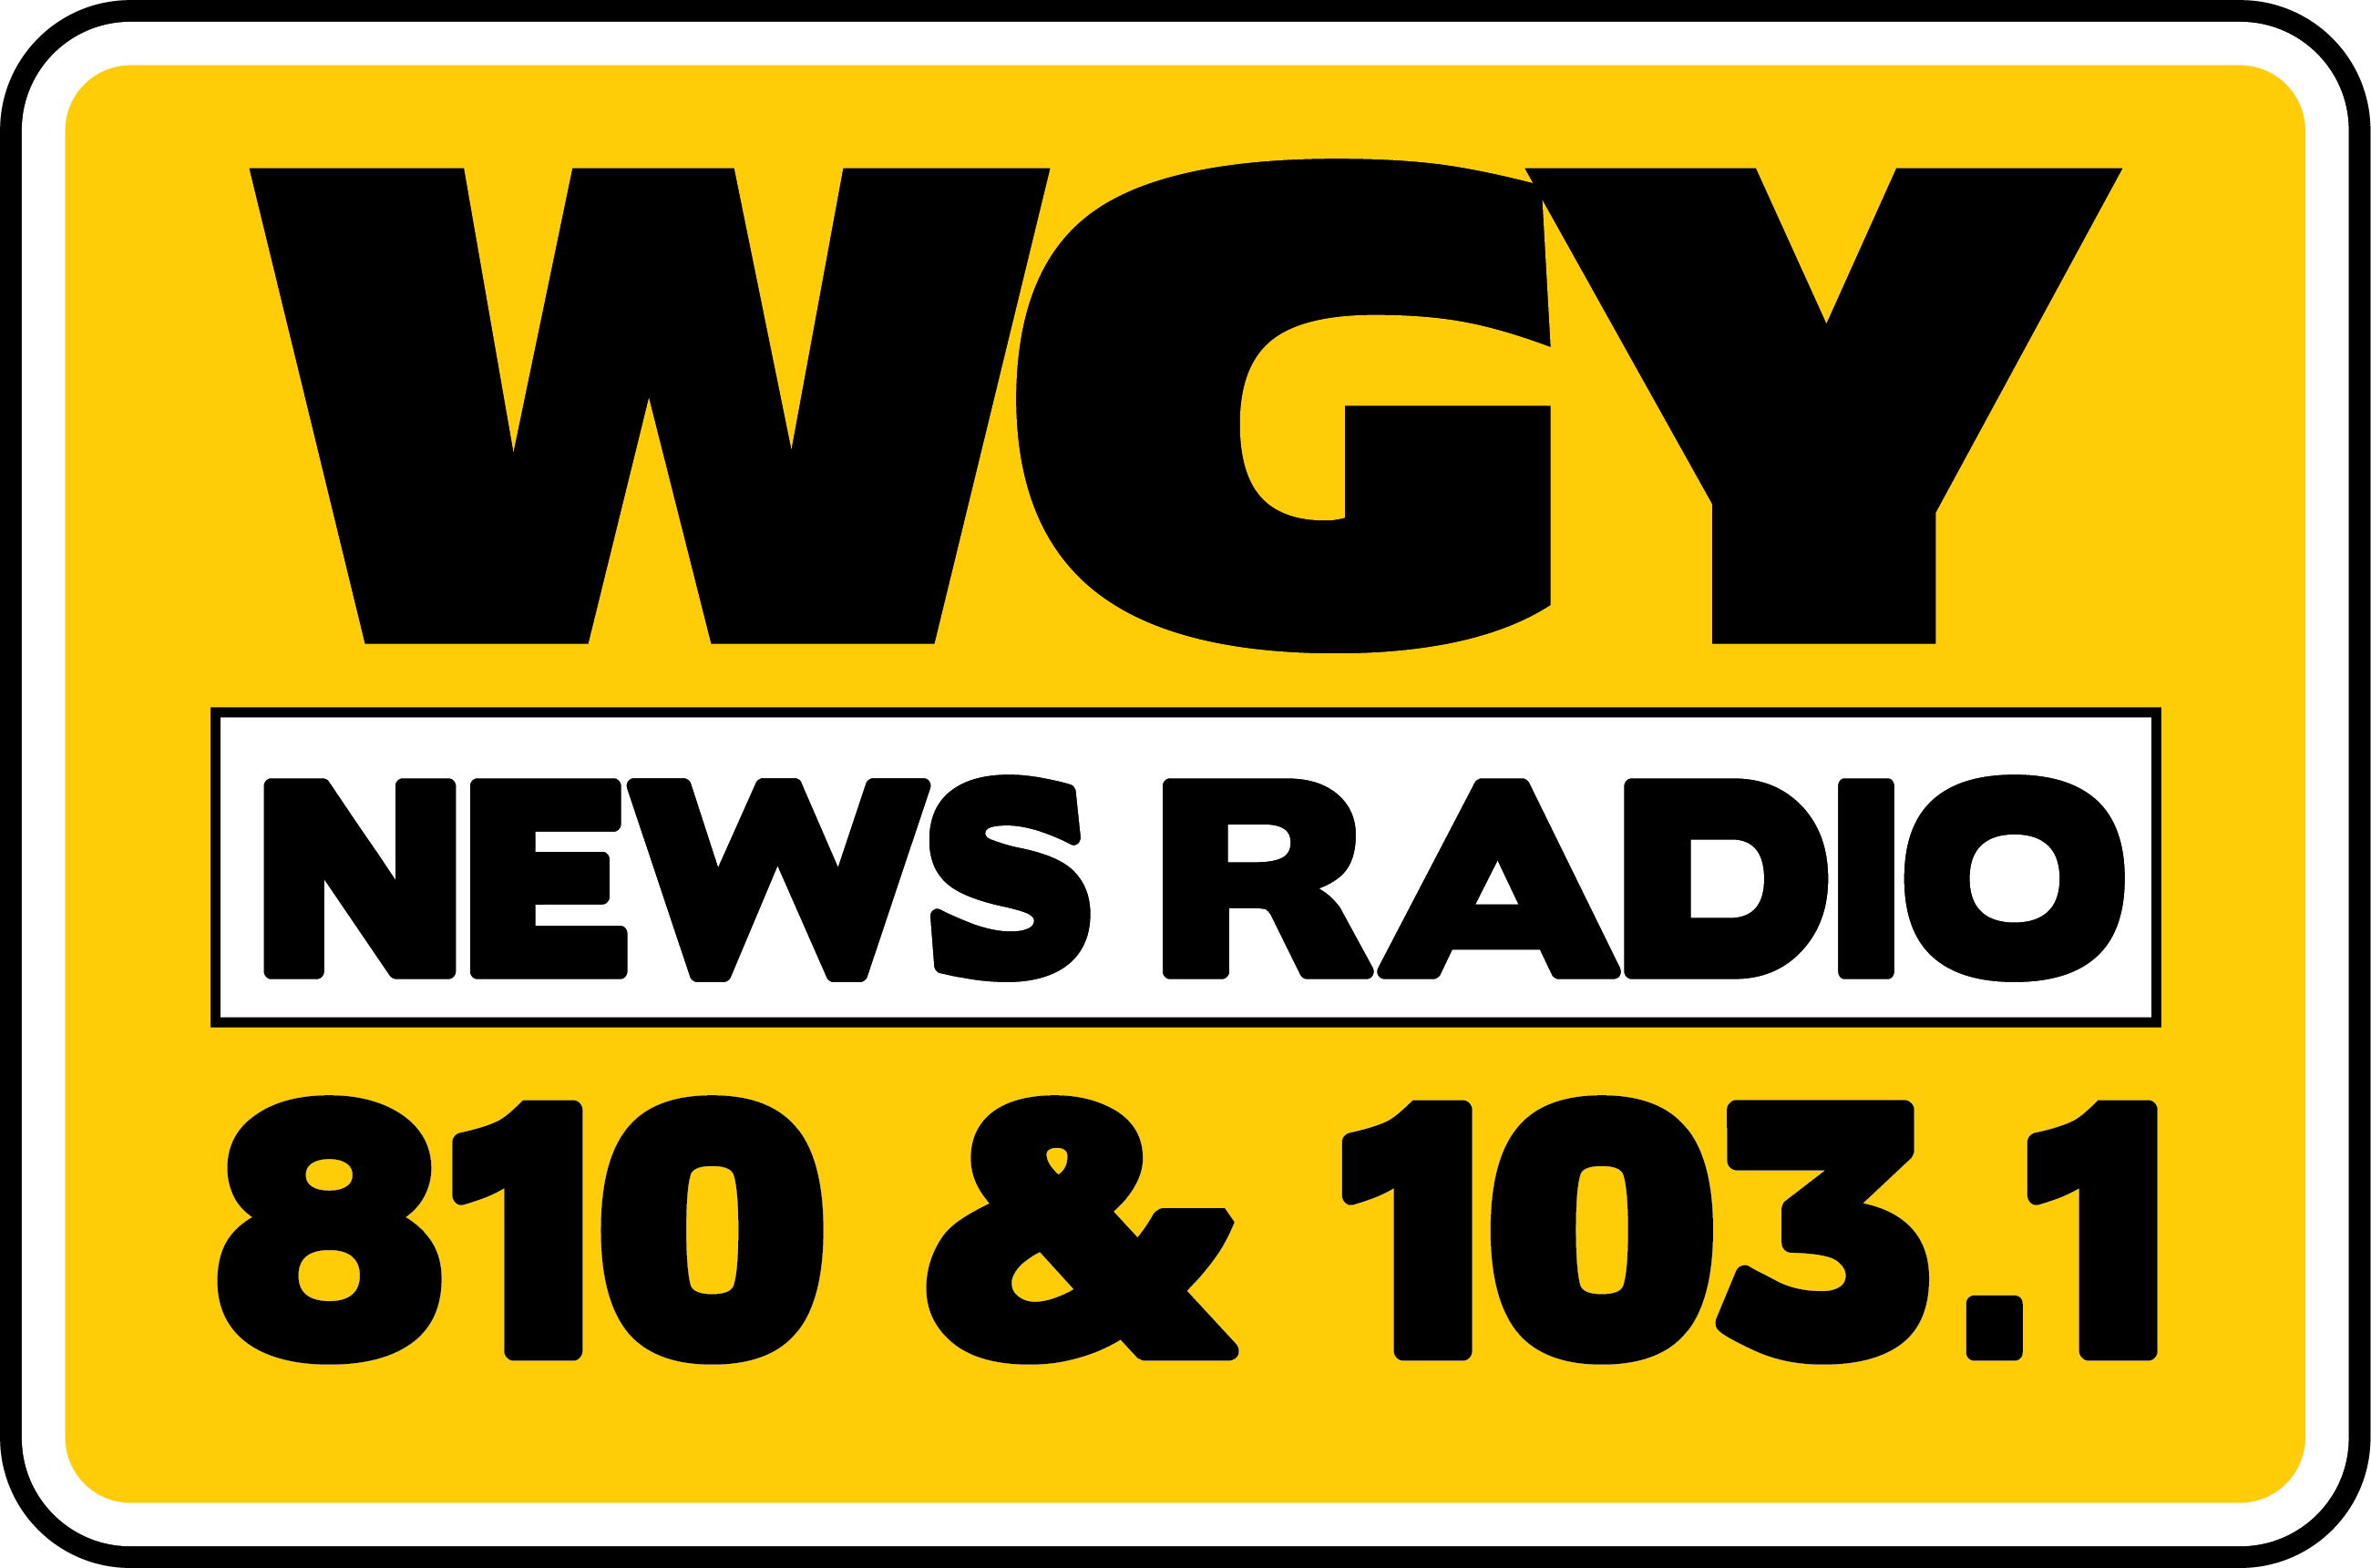 News Radio 810 & 103 1 WGY - The Capital Region's Breaking